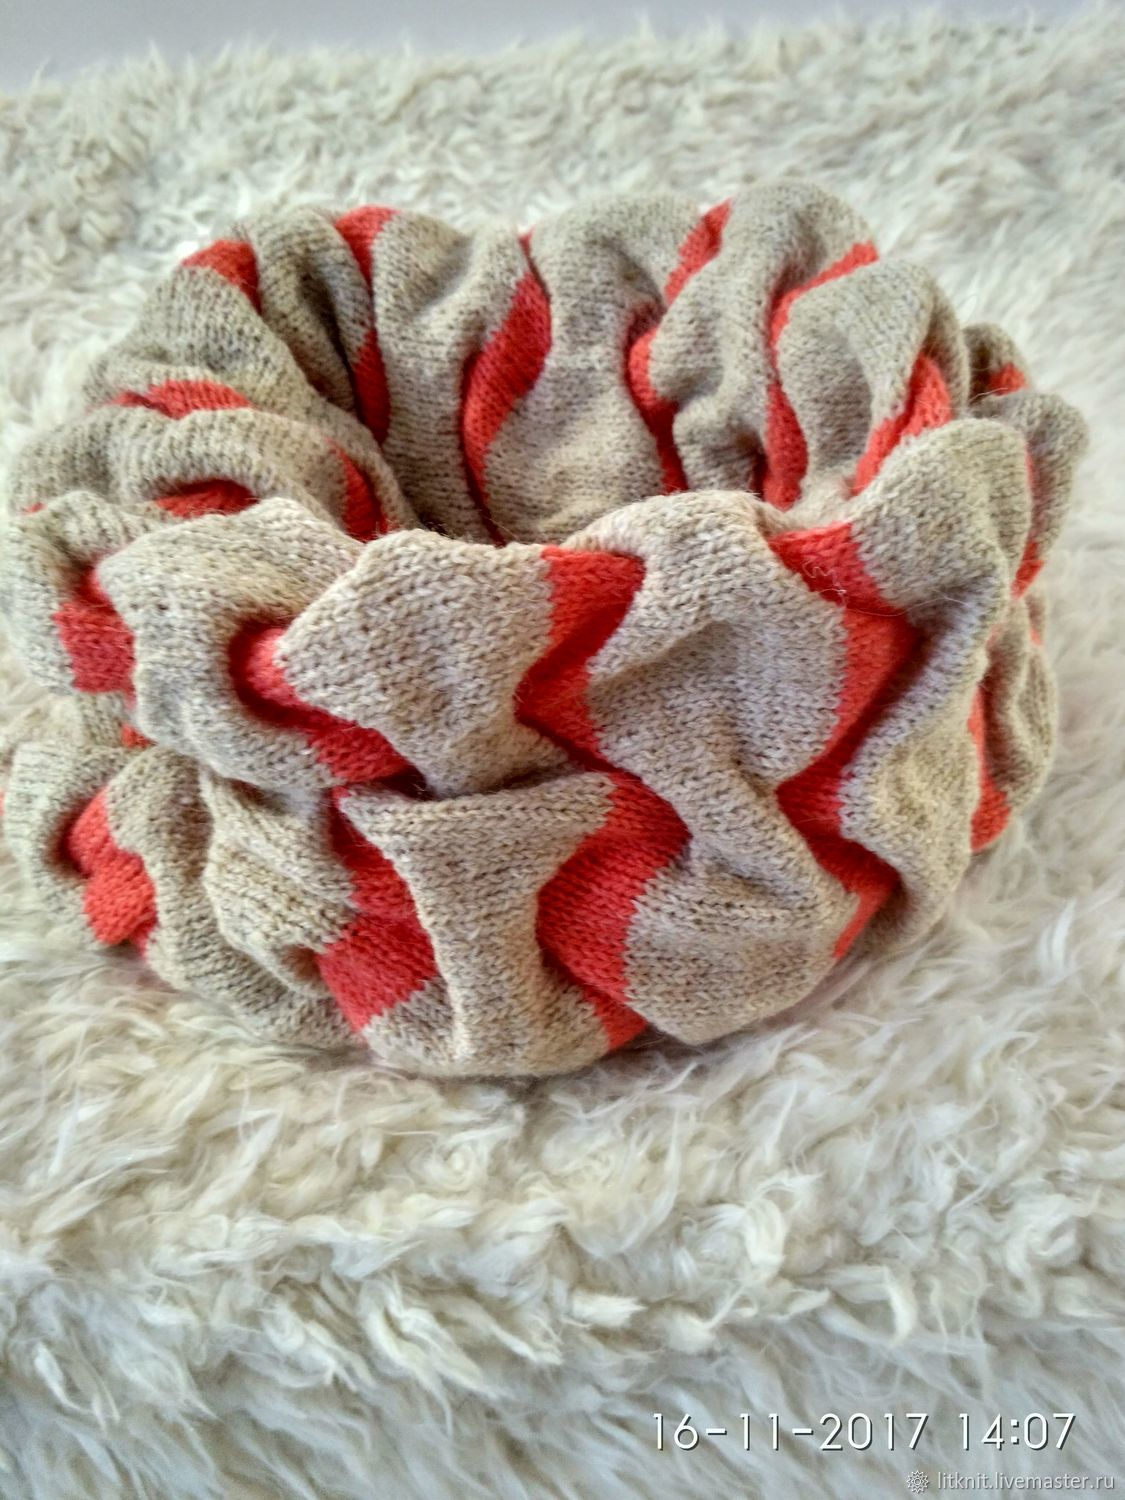 Scarf - Snood knitted in two turns baked milk coral, Scarves, Moscow,  Фото №1